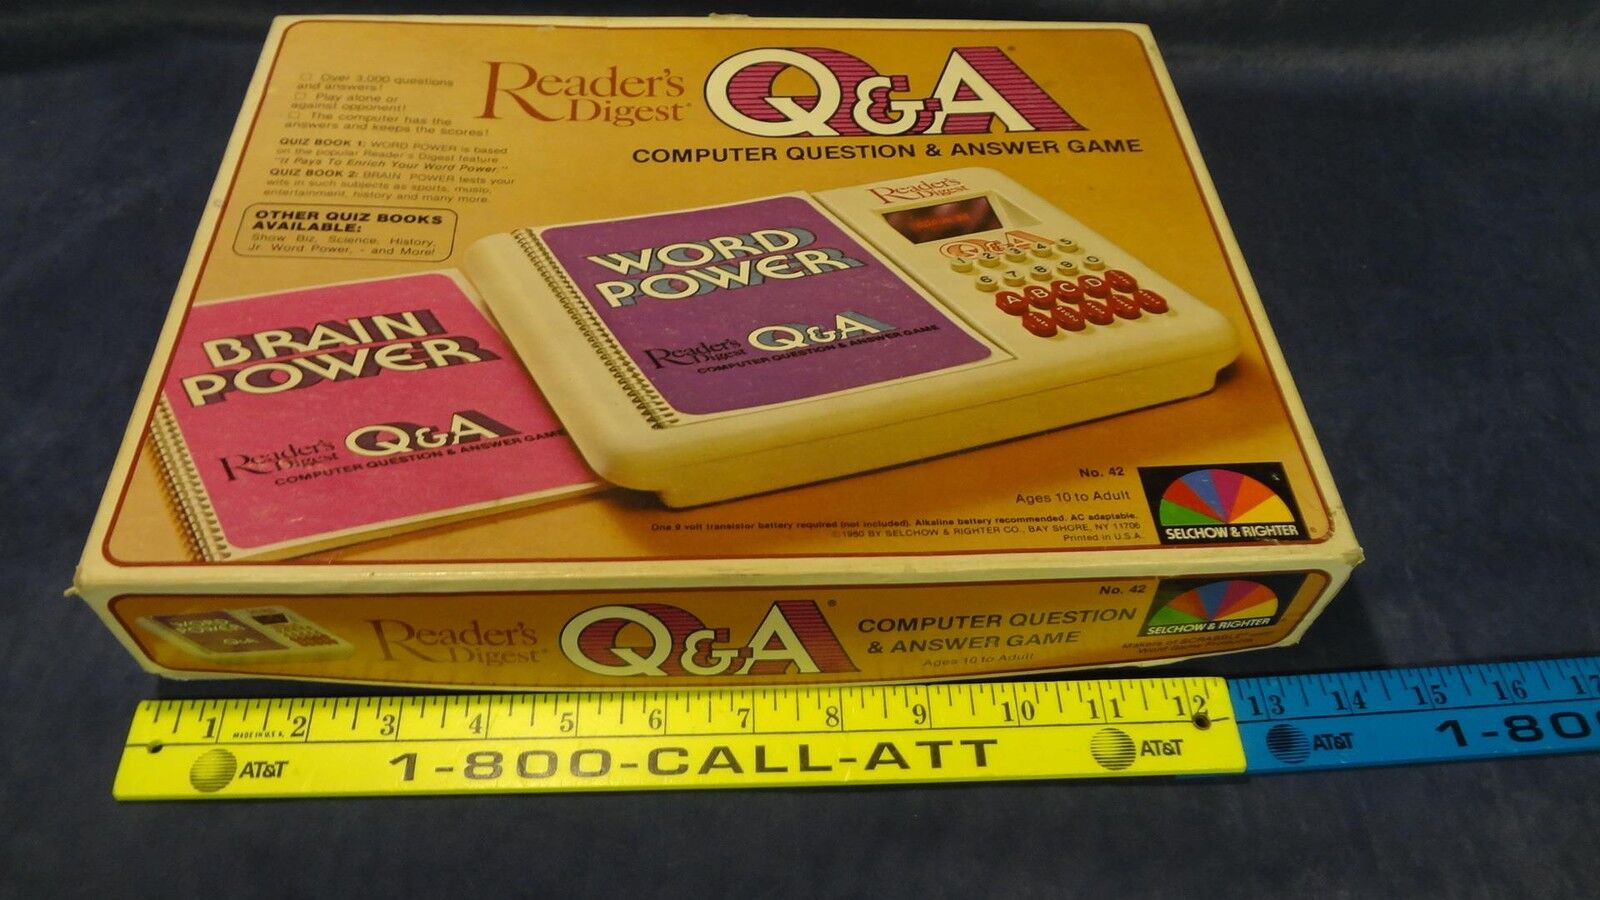 Readers Digest Q&A Computer Question And Answer Game 1980 Handheld Electronic